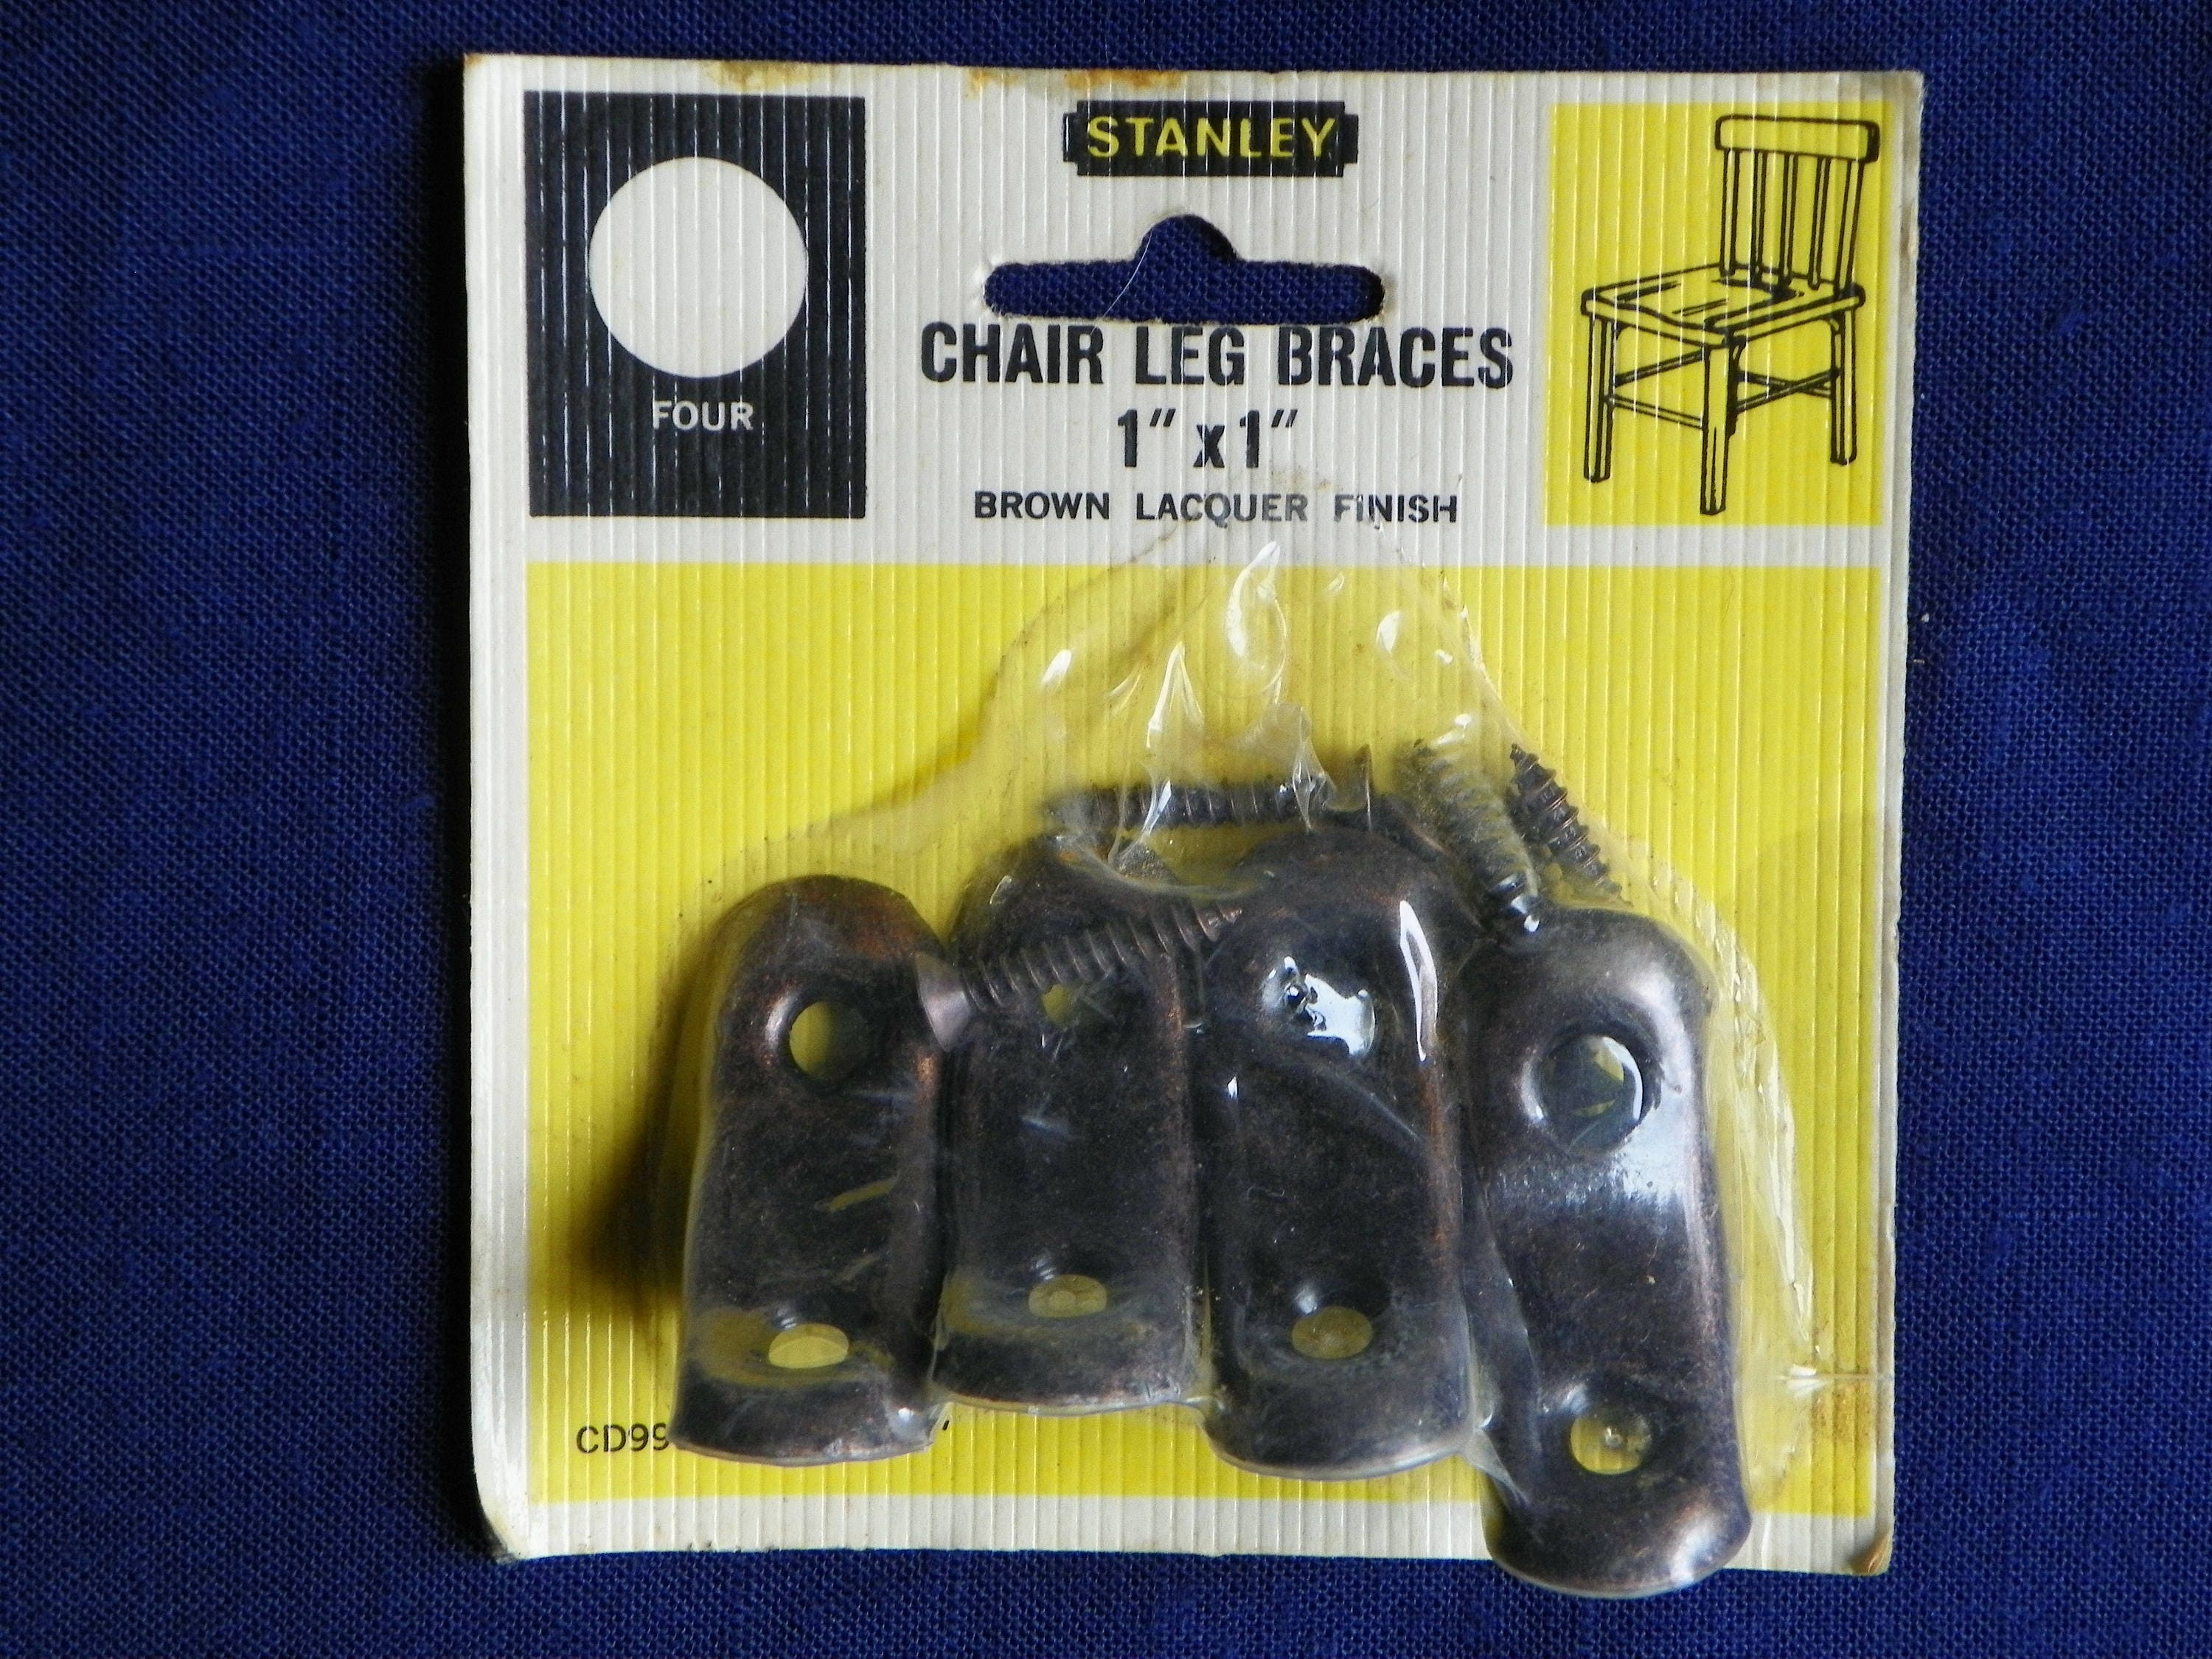 Metal Chair Leg Brackets Or Corner Braces Set Of 8 1 By 1 In Original Unopened Package Free Shipping Stanley Finish Metal Corner Brackets